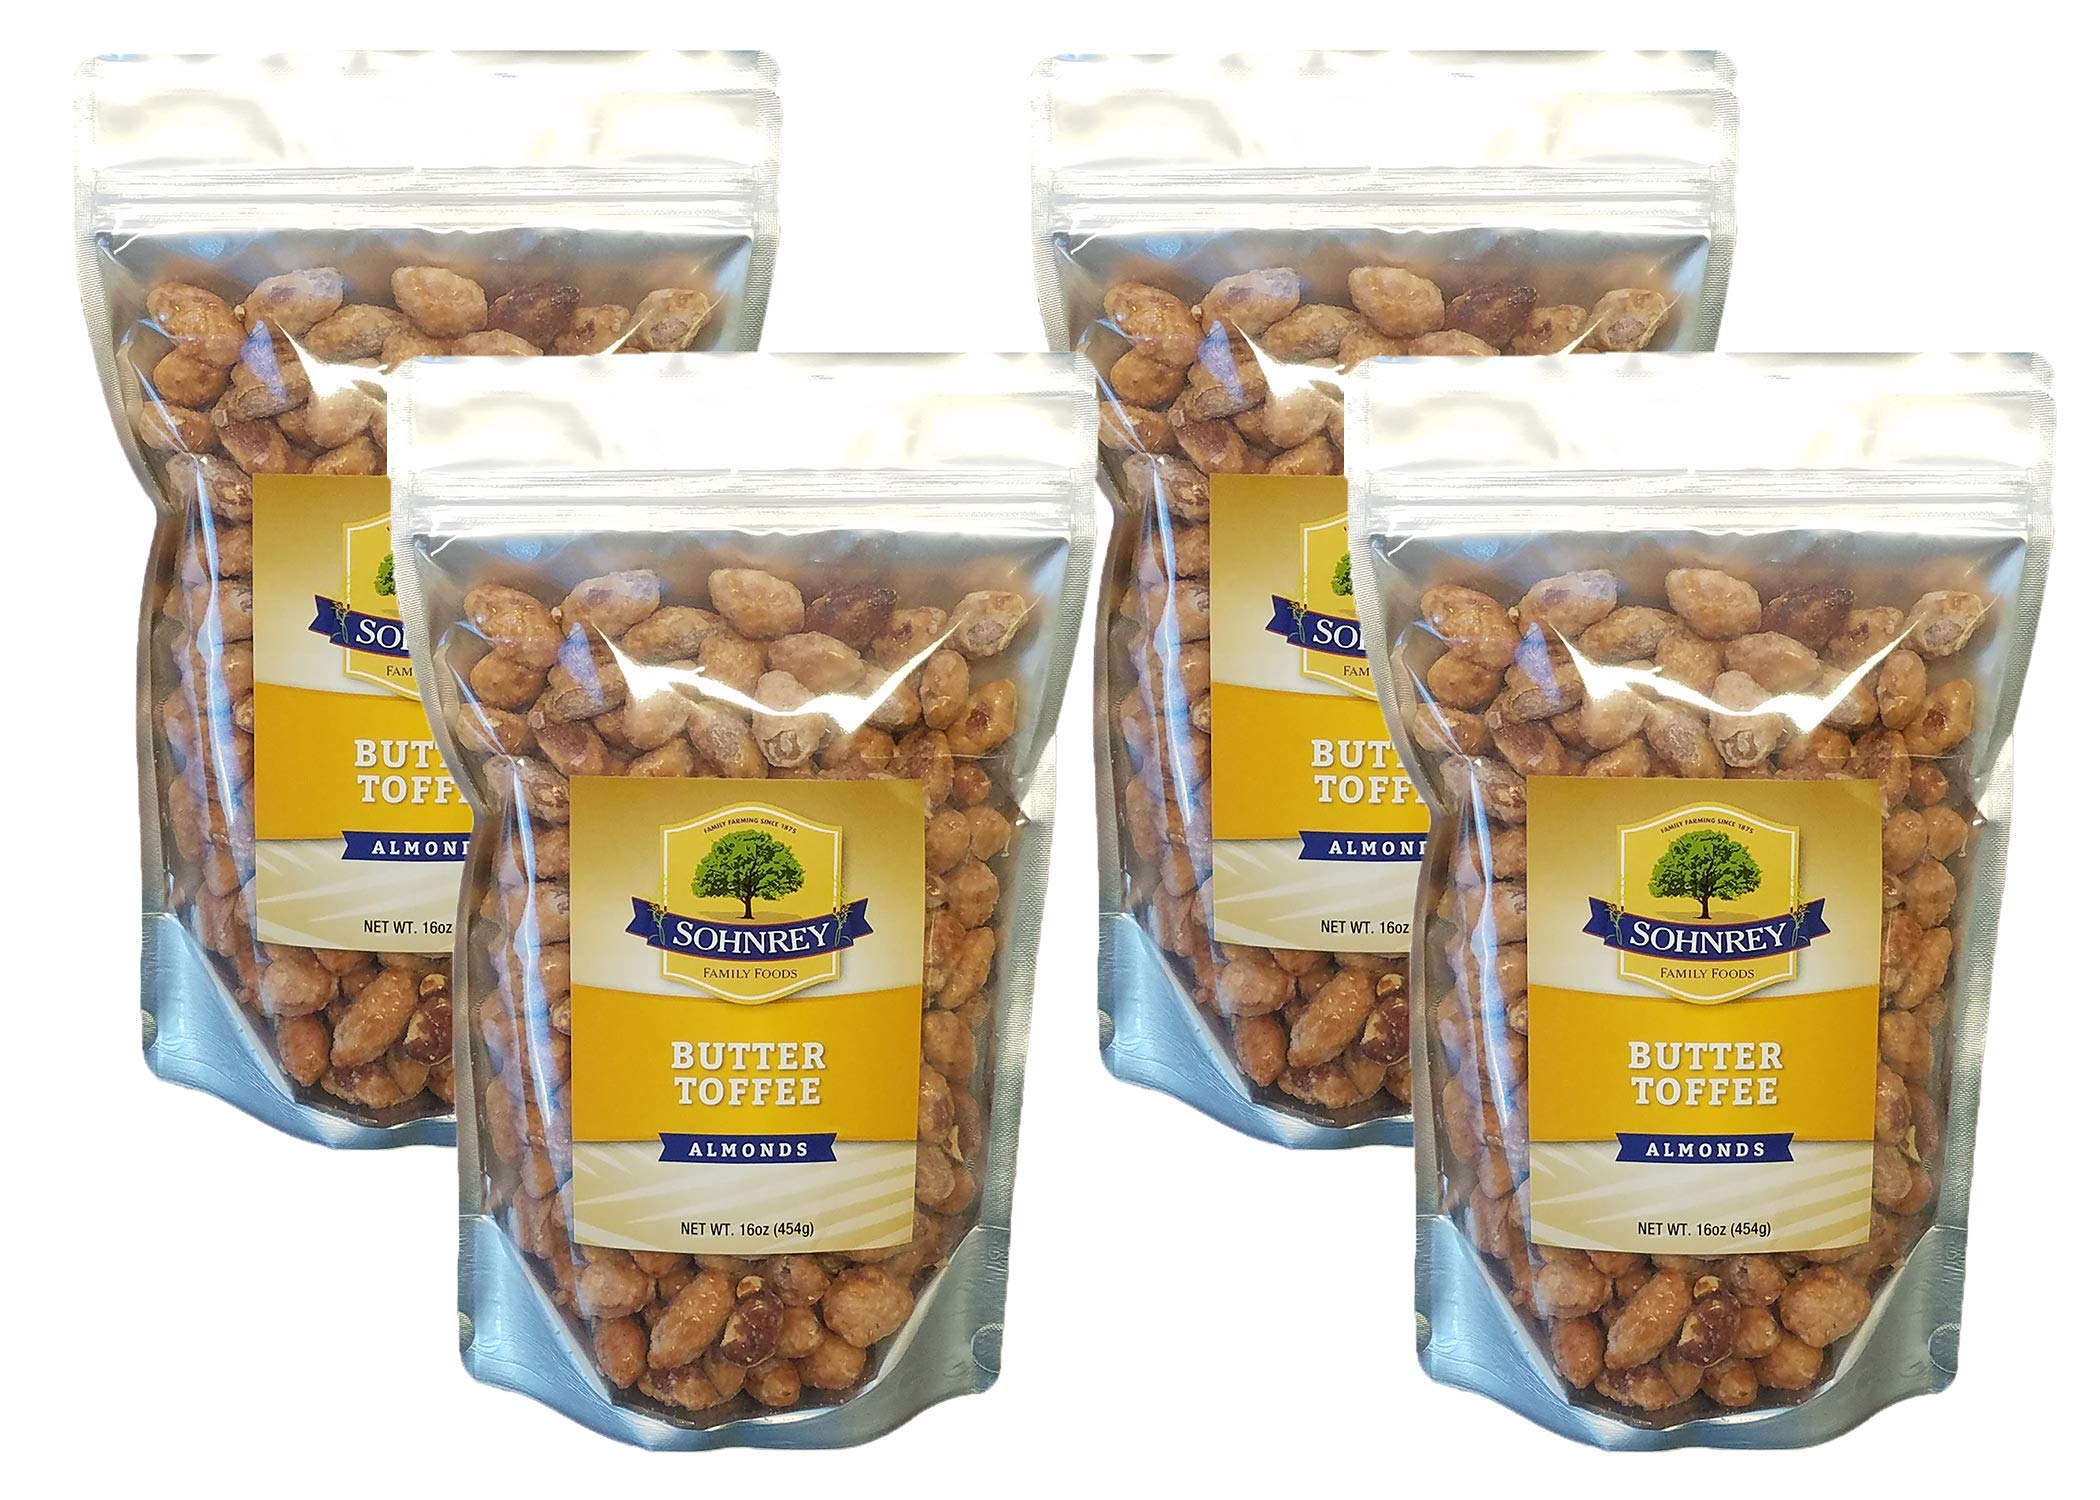 Butter Toffee Almonds Fresh Gourmet Sweet and Salty Crunch (16 oz) Resealable Bag from Sohnrey Family Foods (4-Pack (64 oz)) by Sohnrey Family Foods